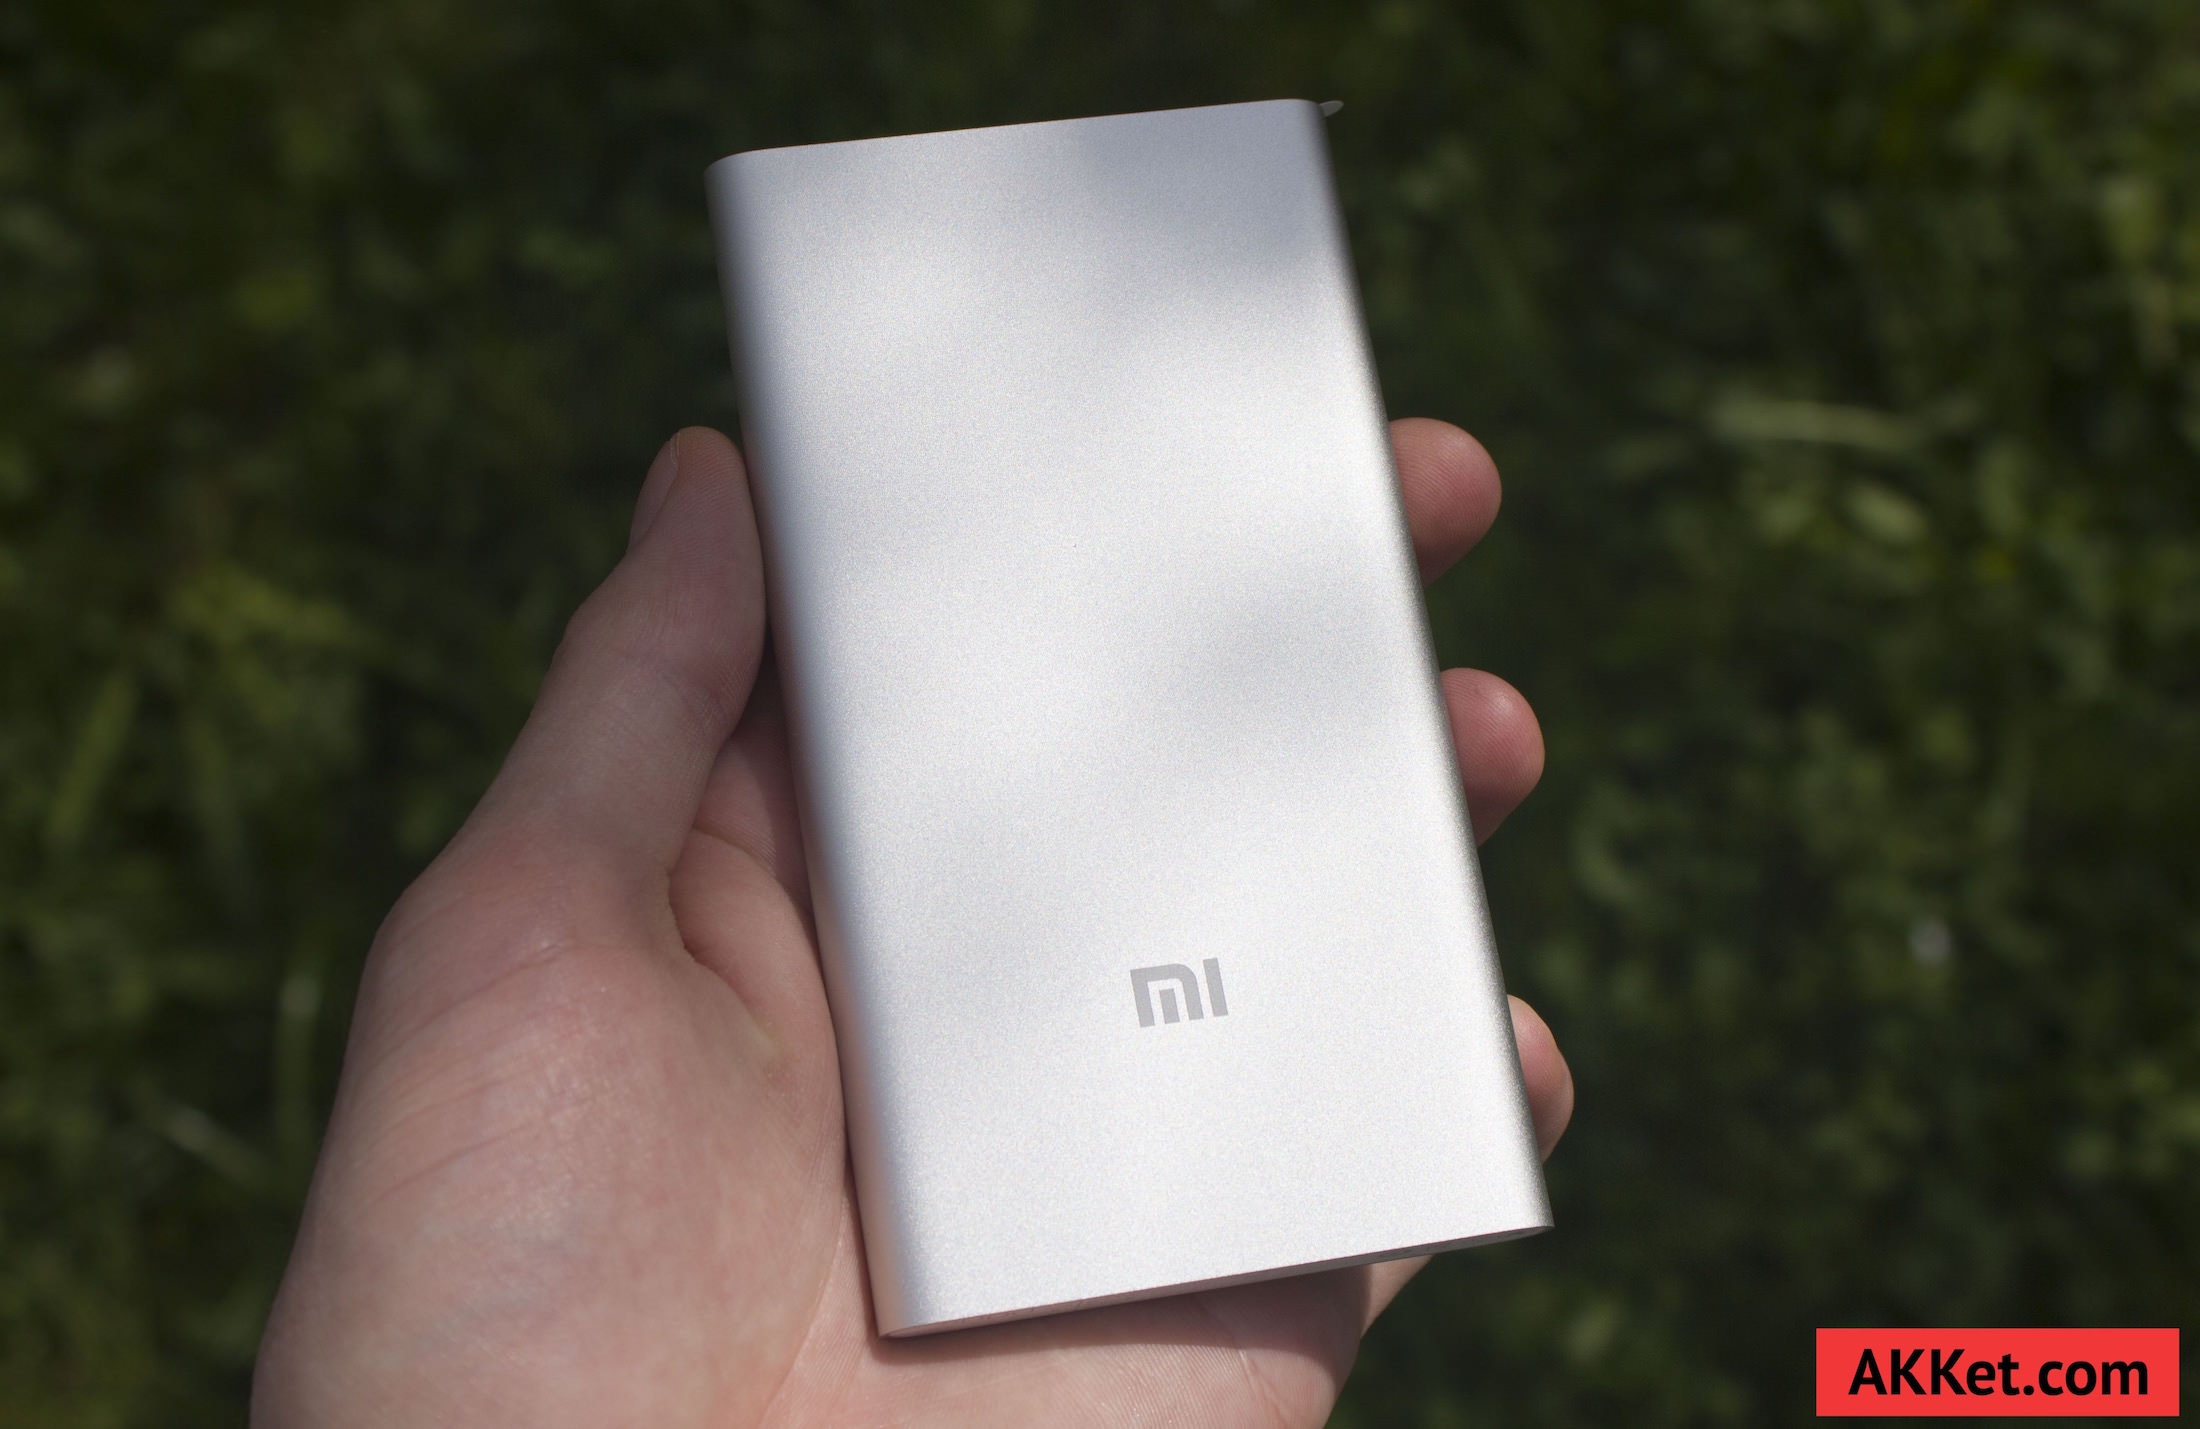 Xiaomi Mi Power Bank 5000 mAh Review iPhone 3